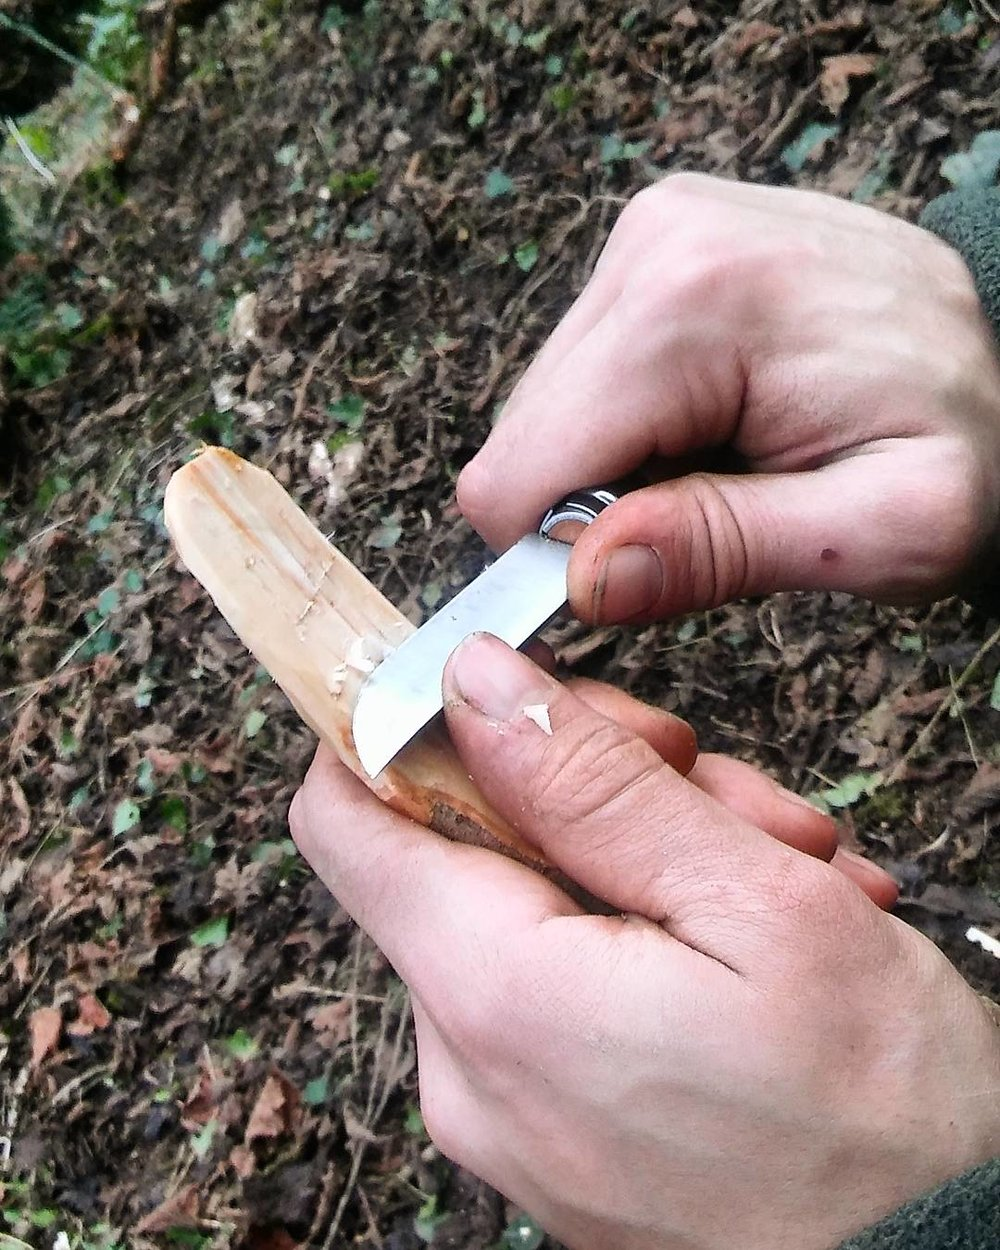 Joe carving out the spoon with his Opinel knife.